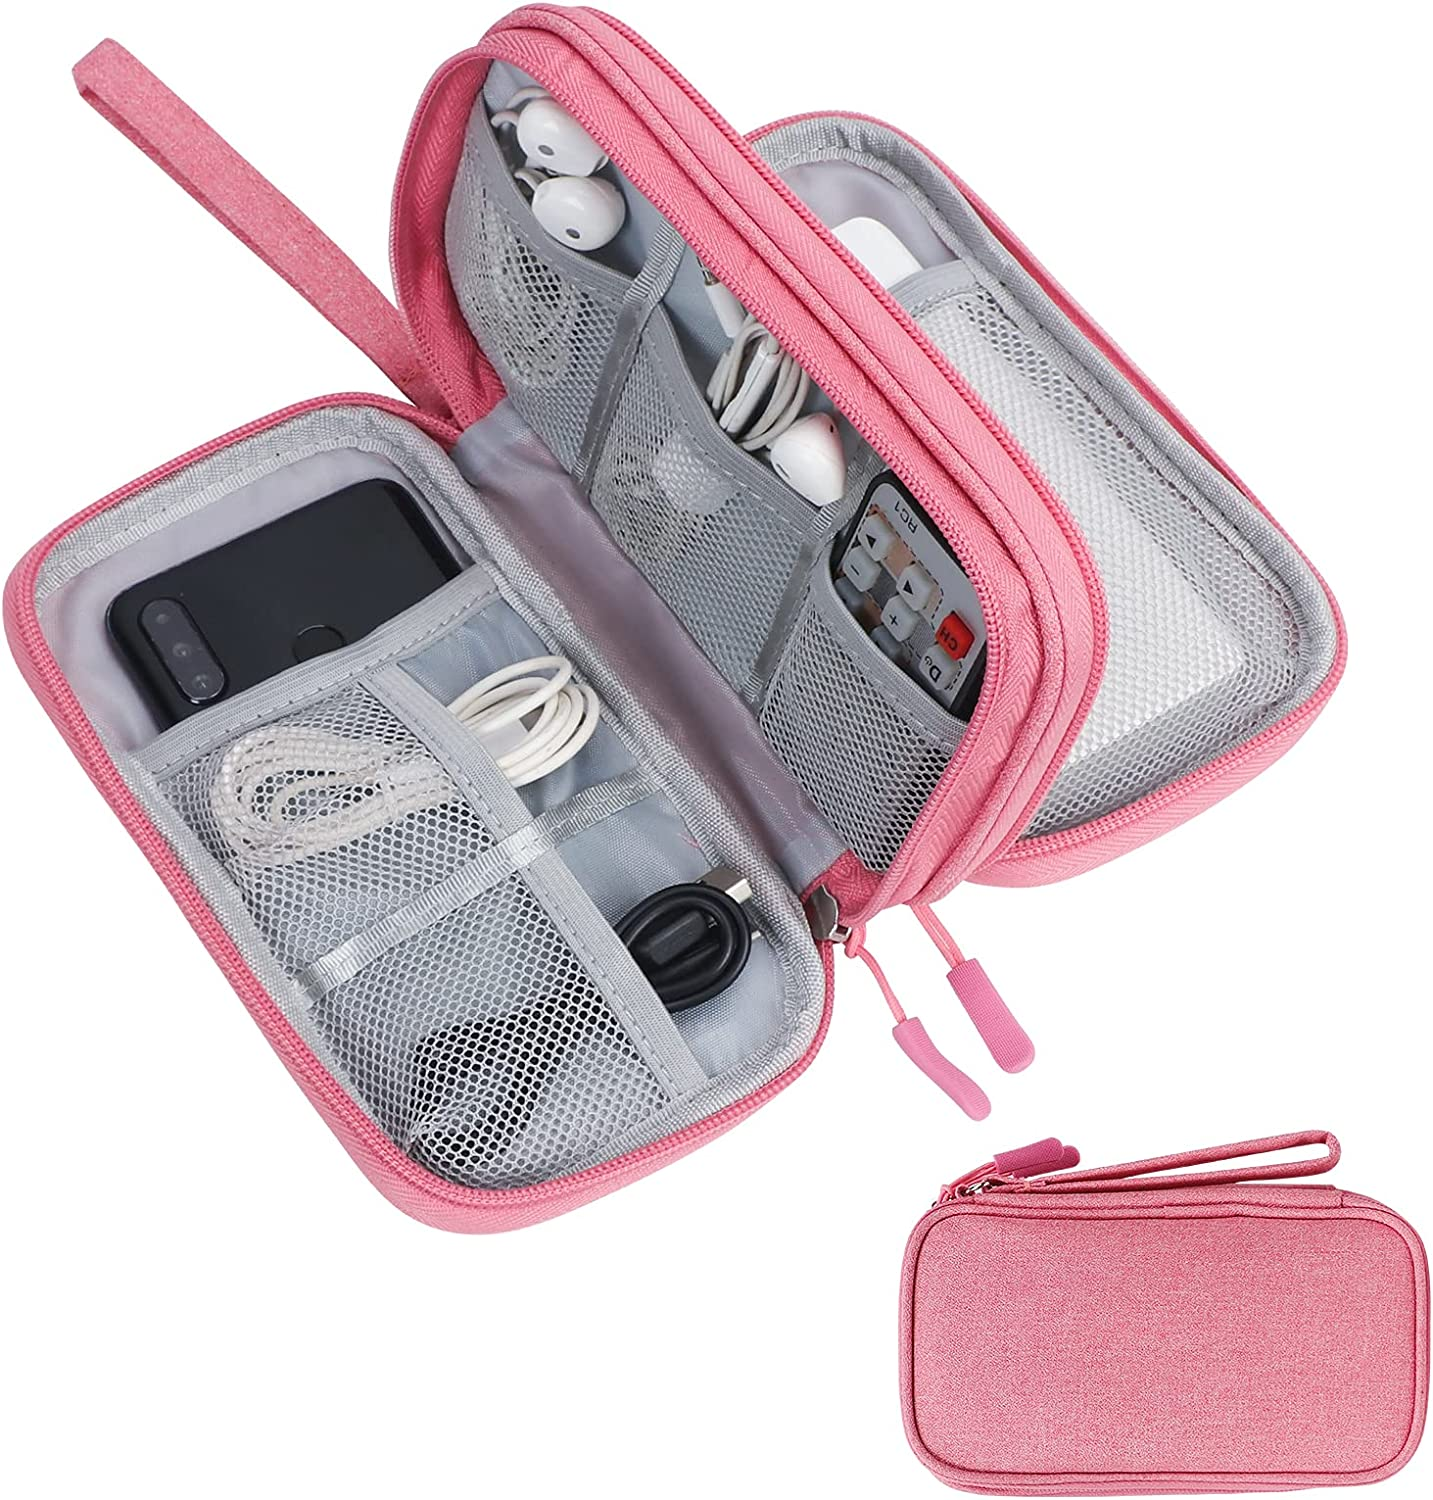 Skycase Travel Cable Organizer,Electronics Accessories Cases, All-in-One Storage Bag,[Waterproof] Accessories Carry Bag for USB Data Cable,Earphone Wire,Power Bank, Phone,Pink